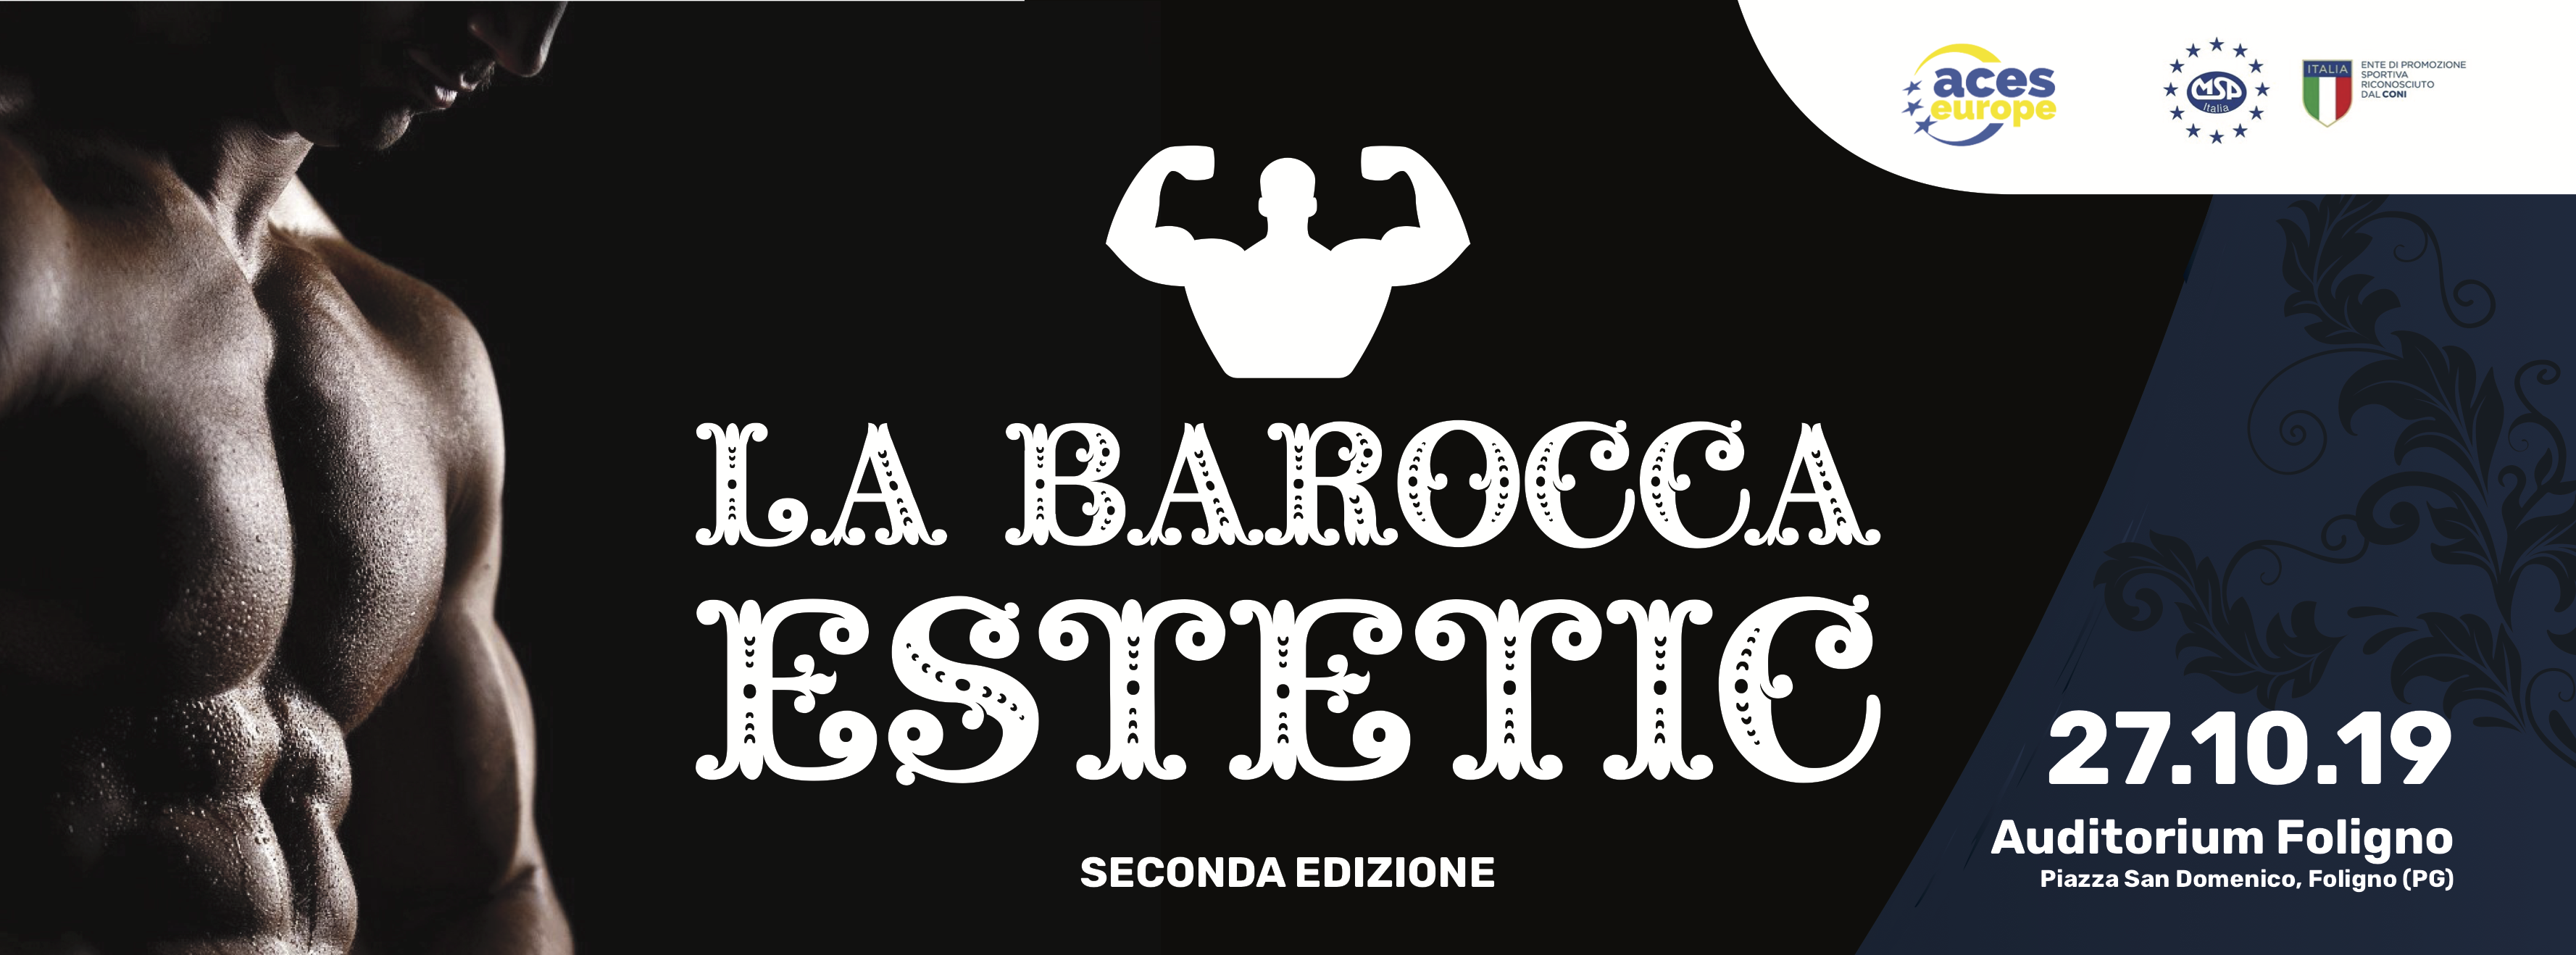 La Barocca Estetic 2019 – Natural BodyBuilding Gara